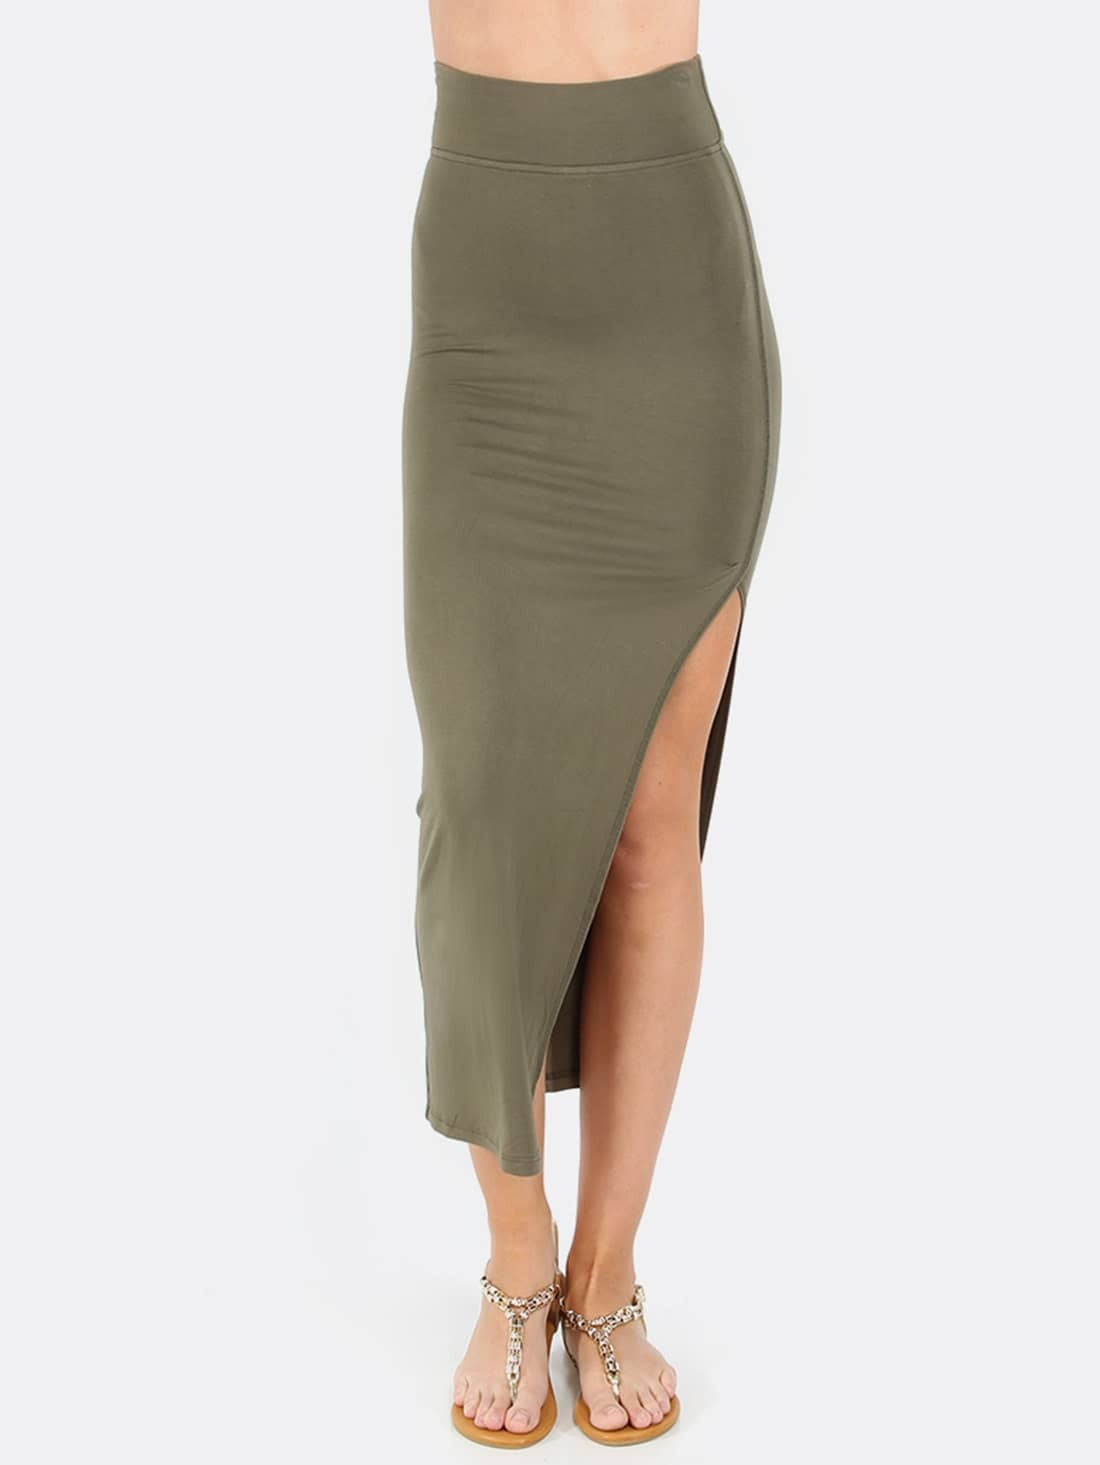 Shop affordable, unique army green pencil skirt designed by top fashion designers worldwide. Discover more latest collections of Sports Bottoms at tennesseemyblogw0.cf